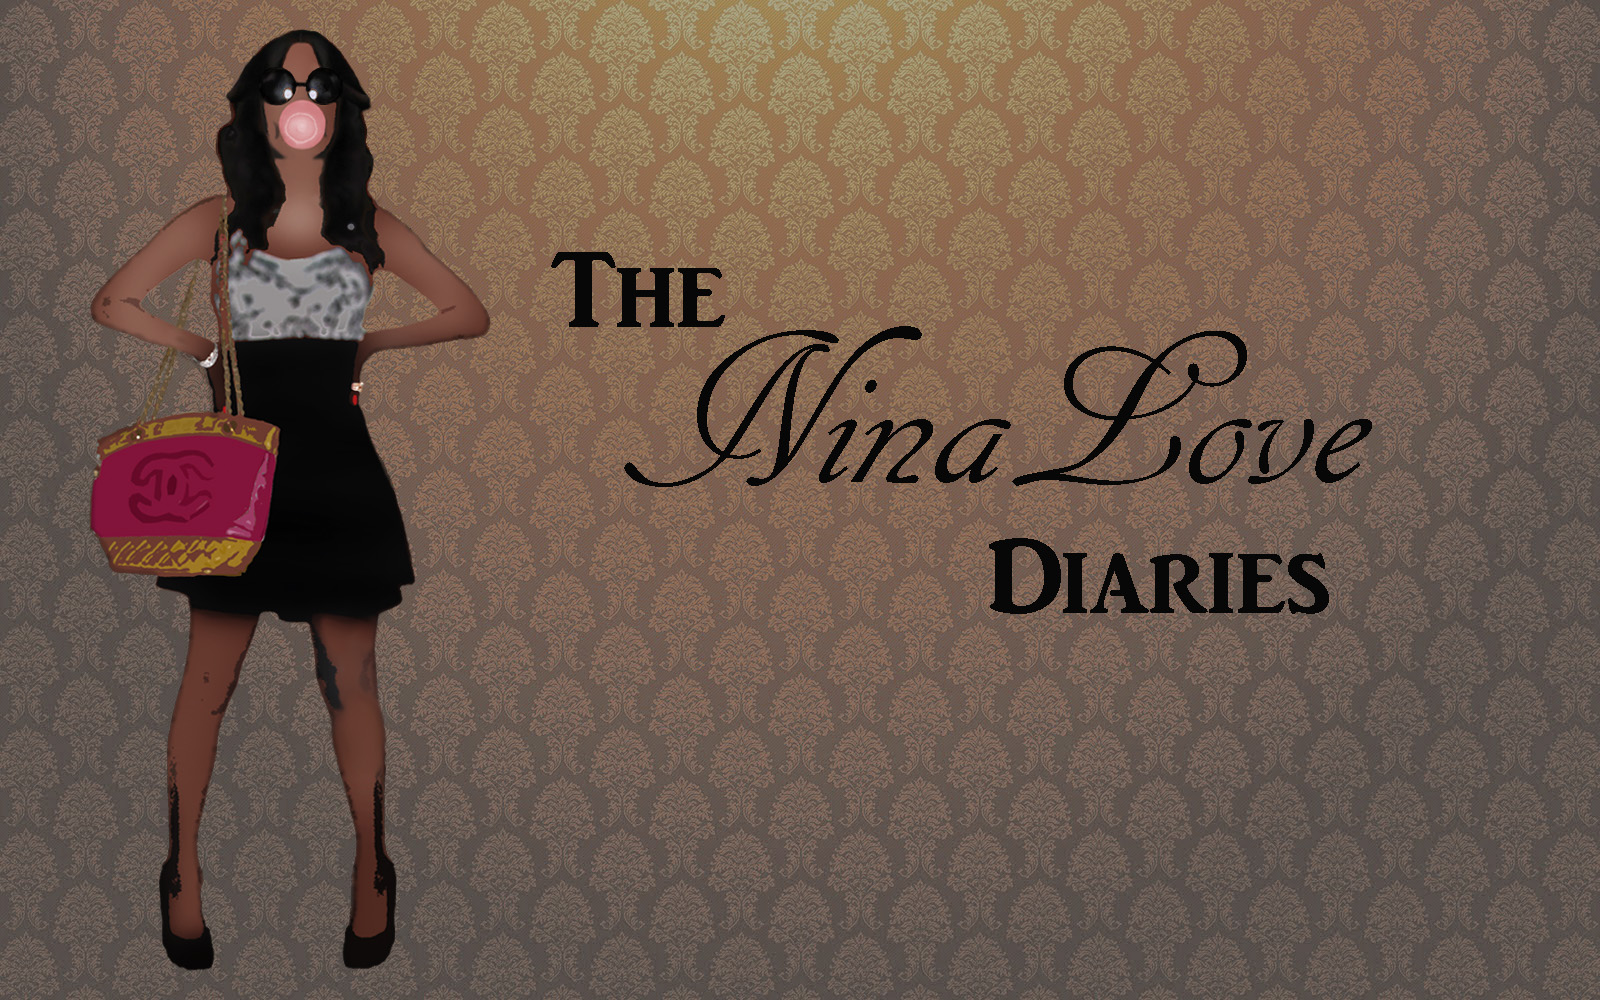 The NinaLove Diaries